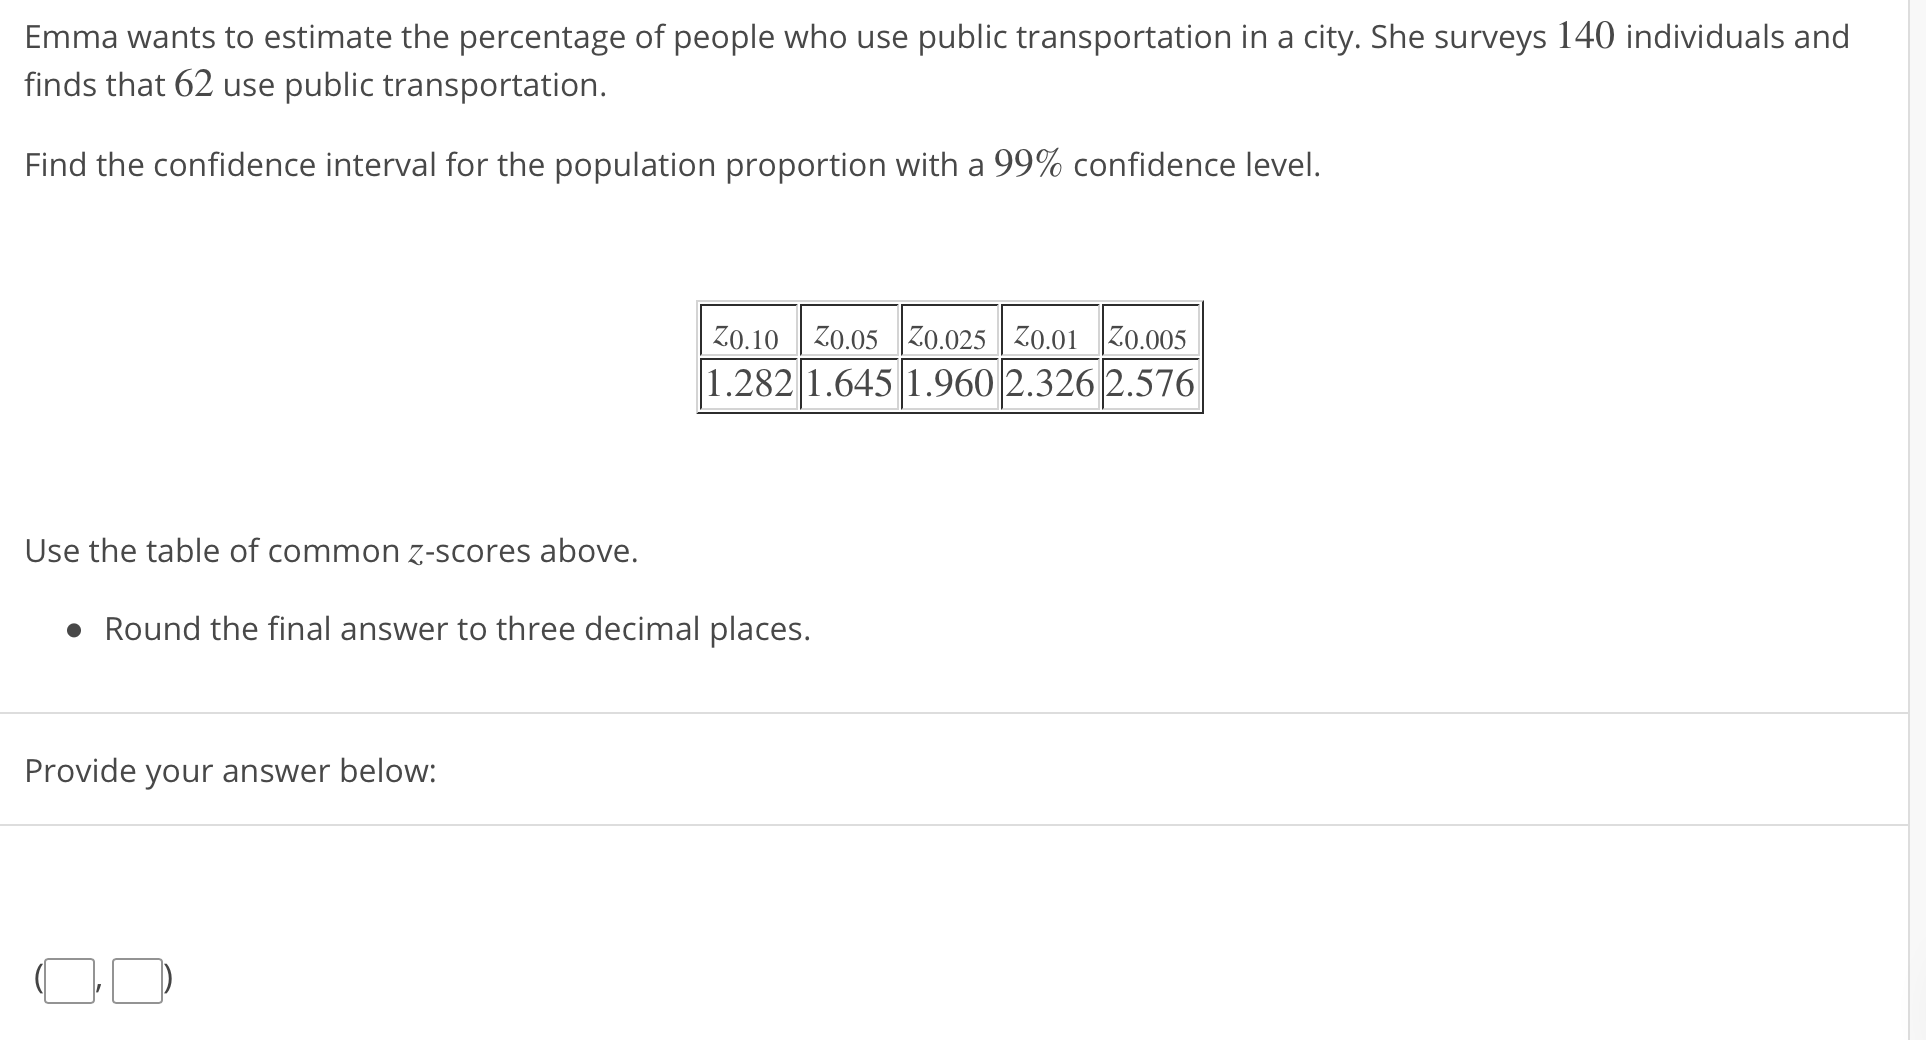 Emma wants to estimate the percentage of people who use public transportation in a city. She surveys 140 individuals and finds that 62 use public transportation. Find the confidence interval for the population proportion with a 99% confidence level. zo. 10 0.05 0.025 Iz0.01 0.005 1.2821.645 1.960 2.3262.576 Use the table of common z-scores above. · Round the final answer to three decimal places. Provide your answer below: